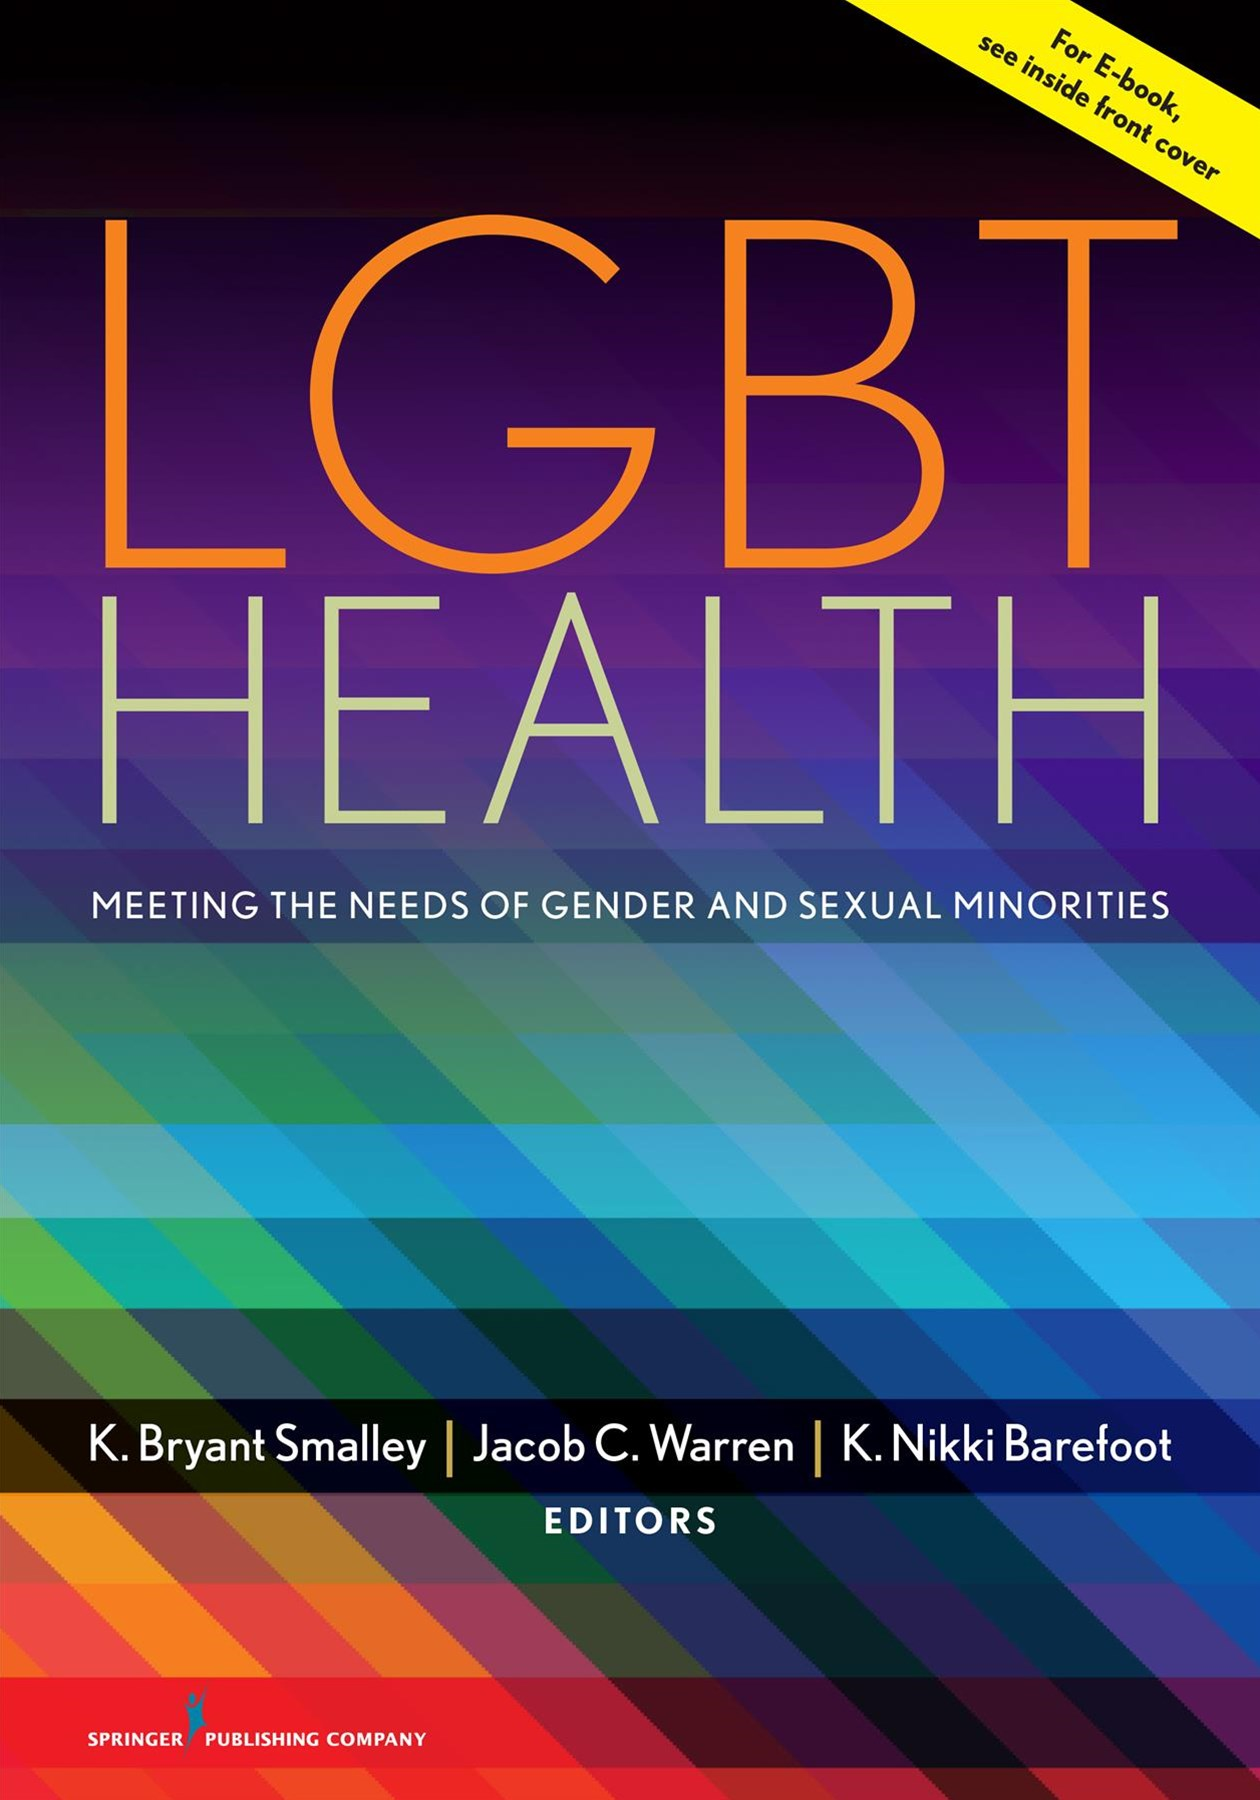 LGBT Health: Meeting the Needs of Gender and Sexual Minorities